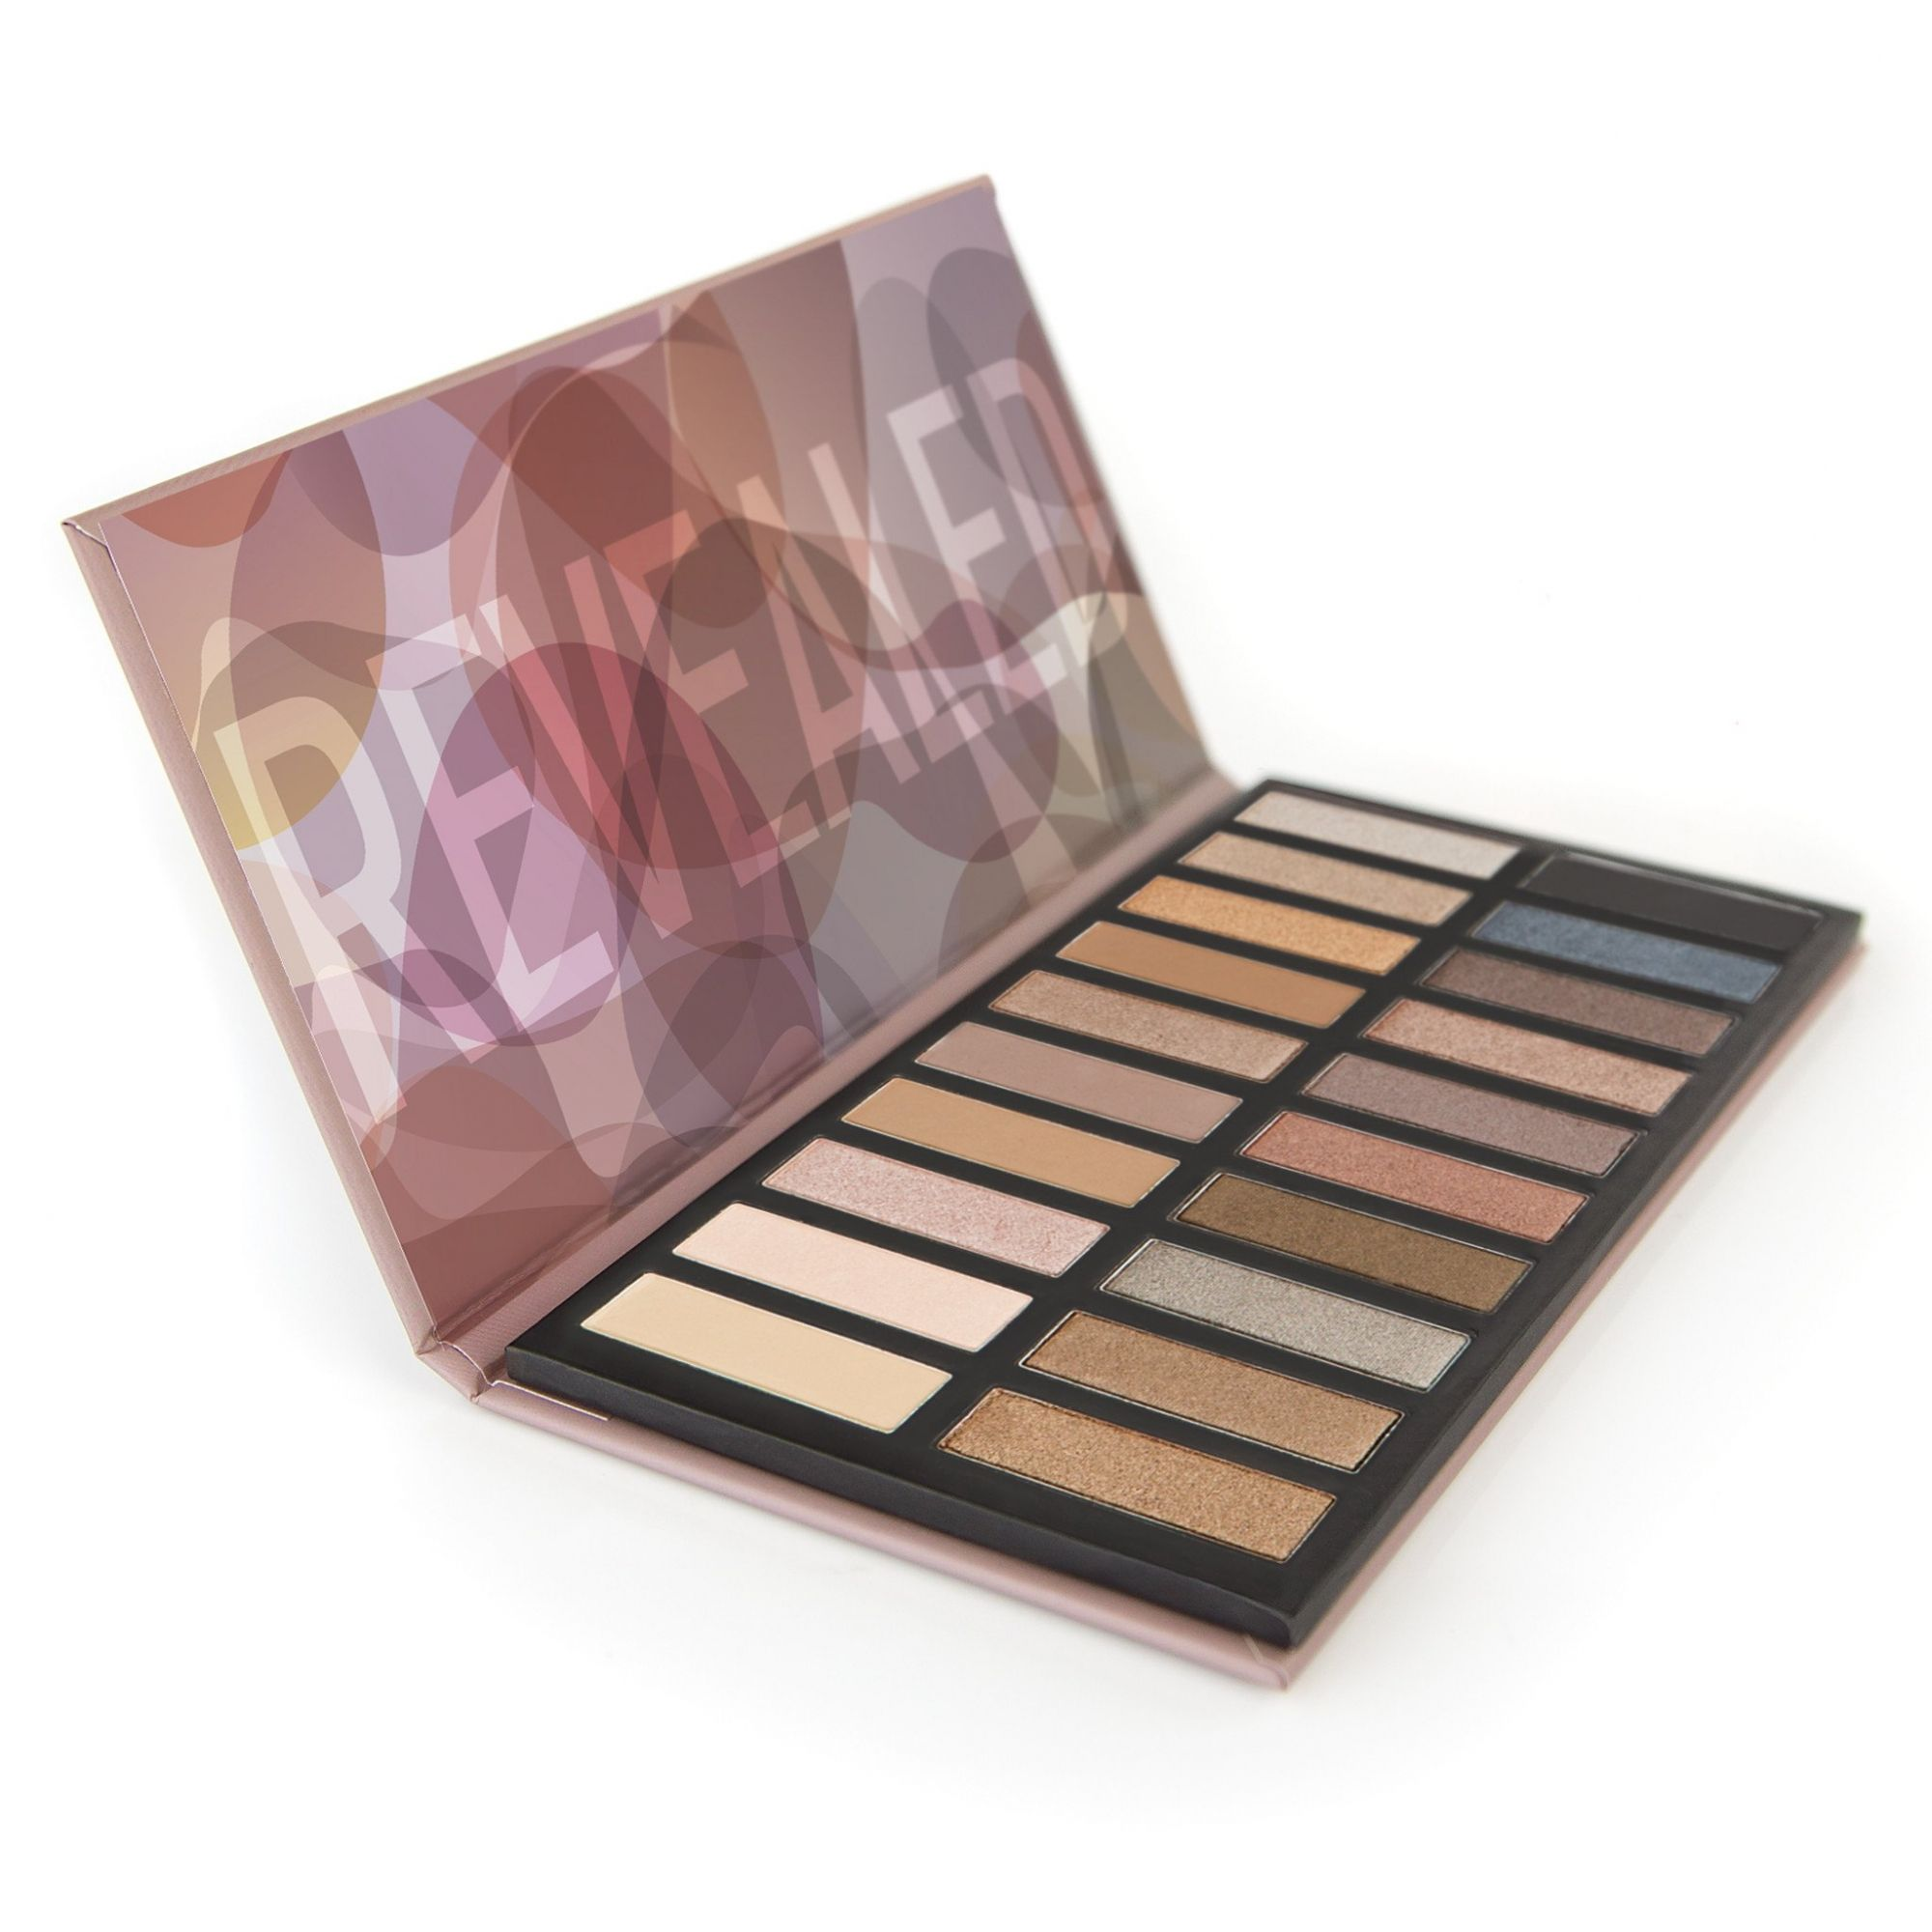 Coastal Scents | PL-036 Revealed Eyeshadow